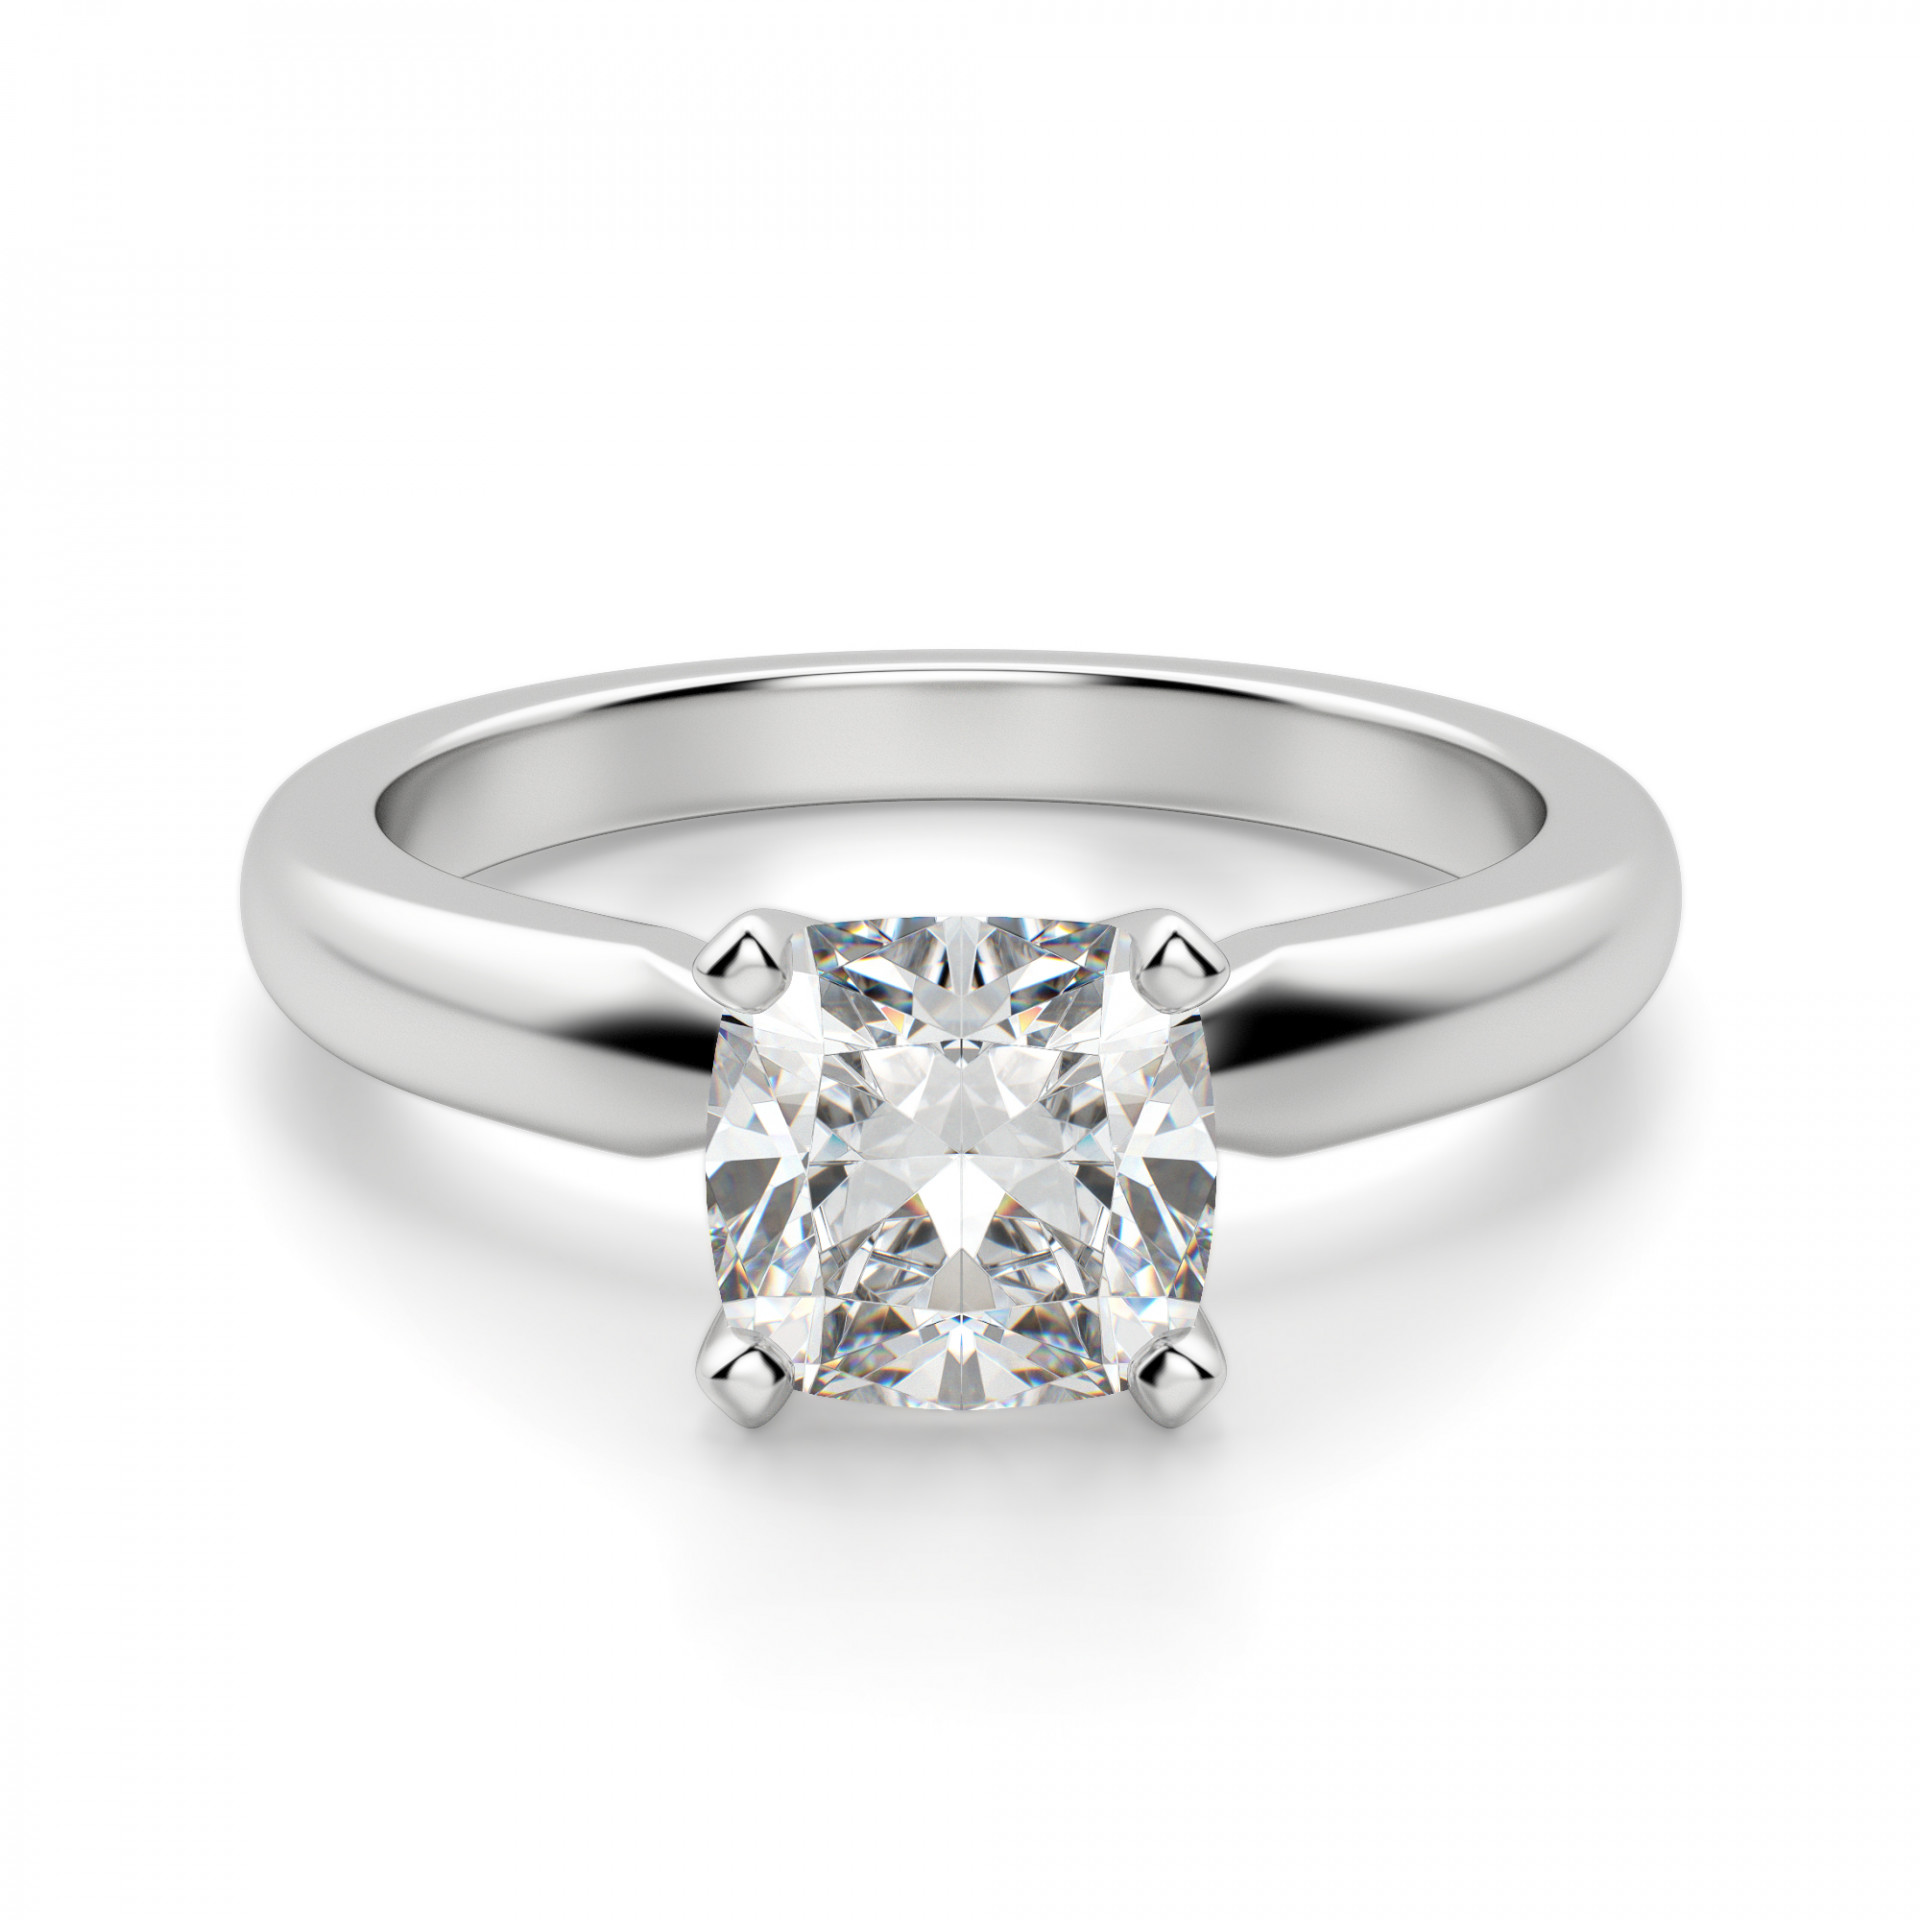 Tiffany Style Solitaire Cushion Cut Engagement Ring